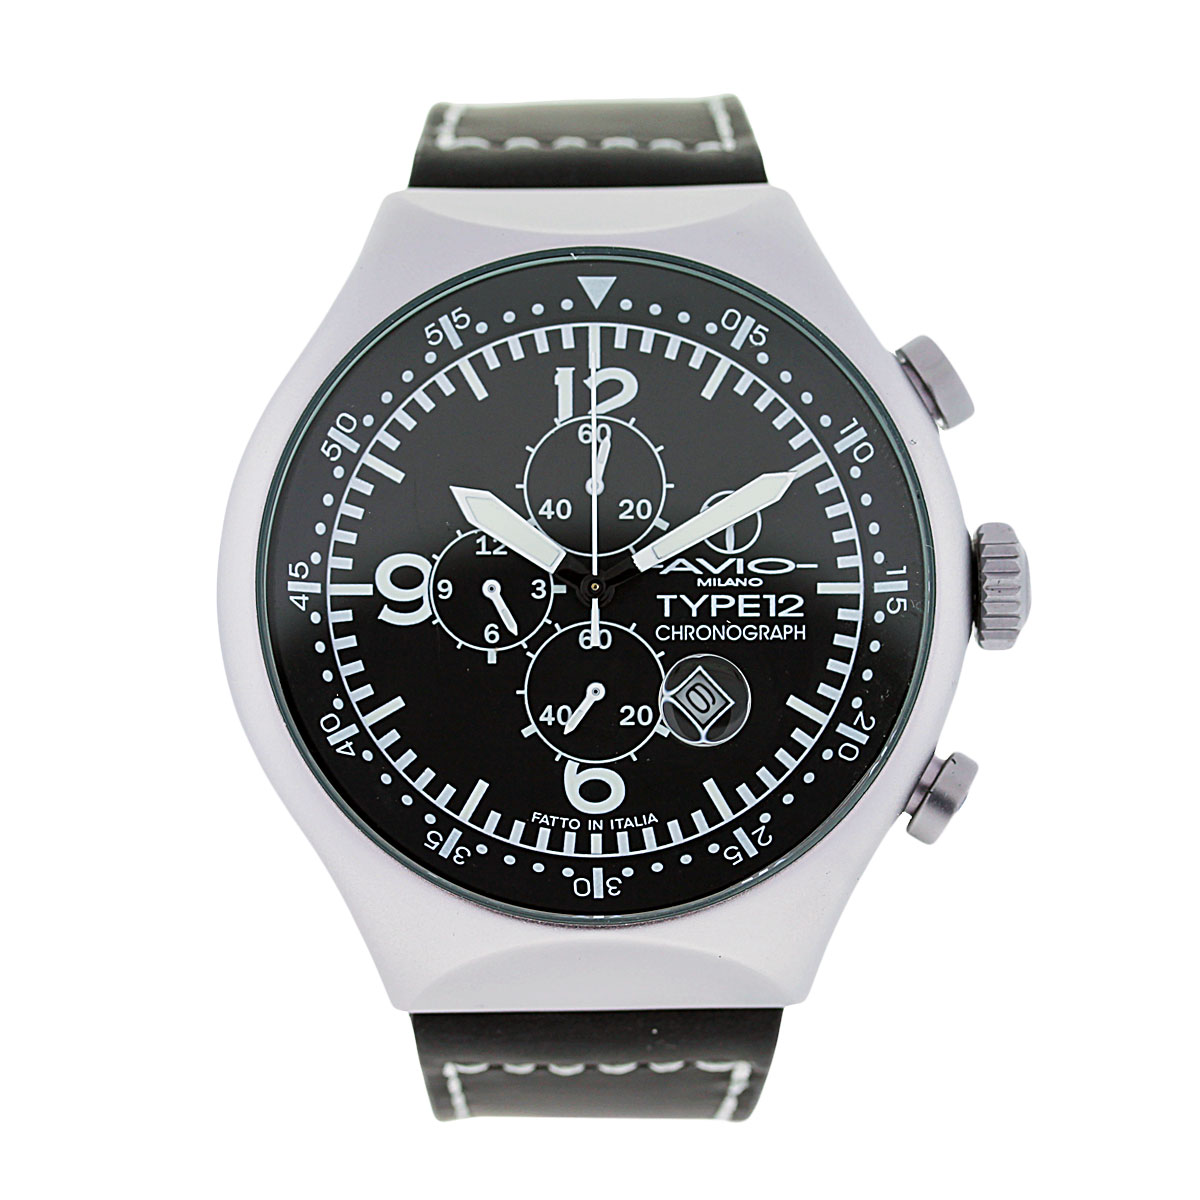 montres de luxe milano avio type 12 chronograph mens watch boca raton. Black Bedroom Furniture Sets. Home Design Ideas